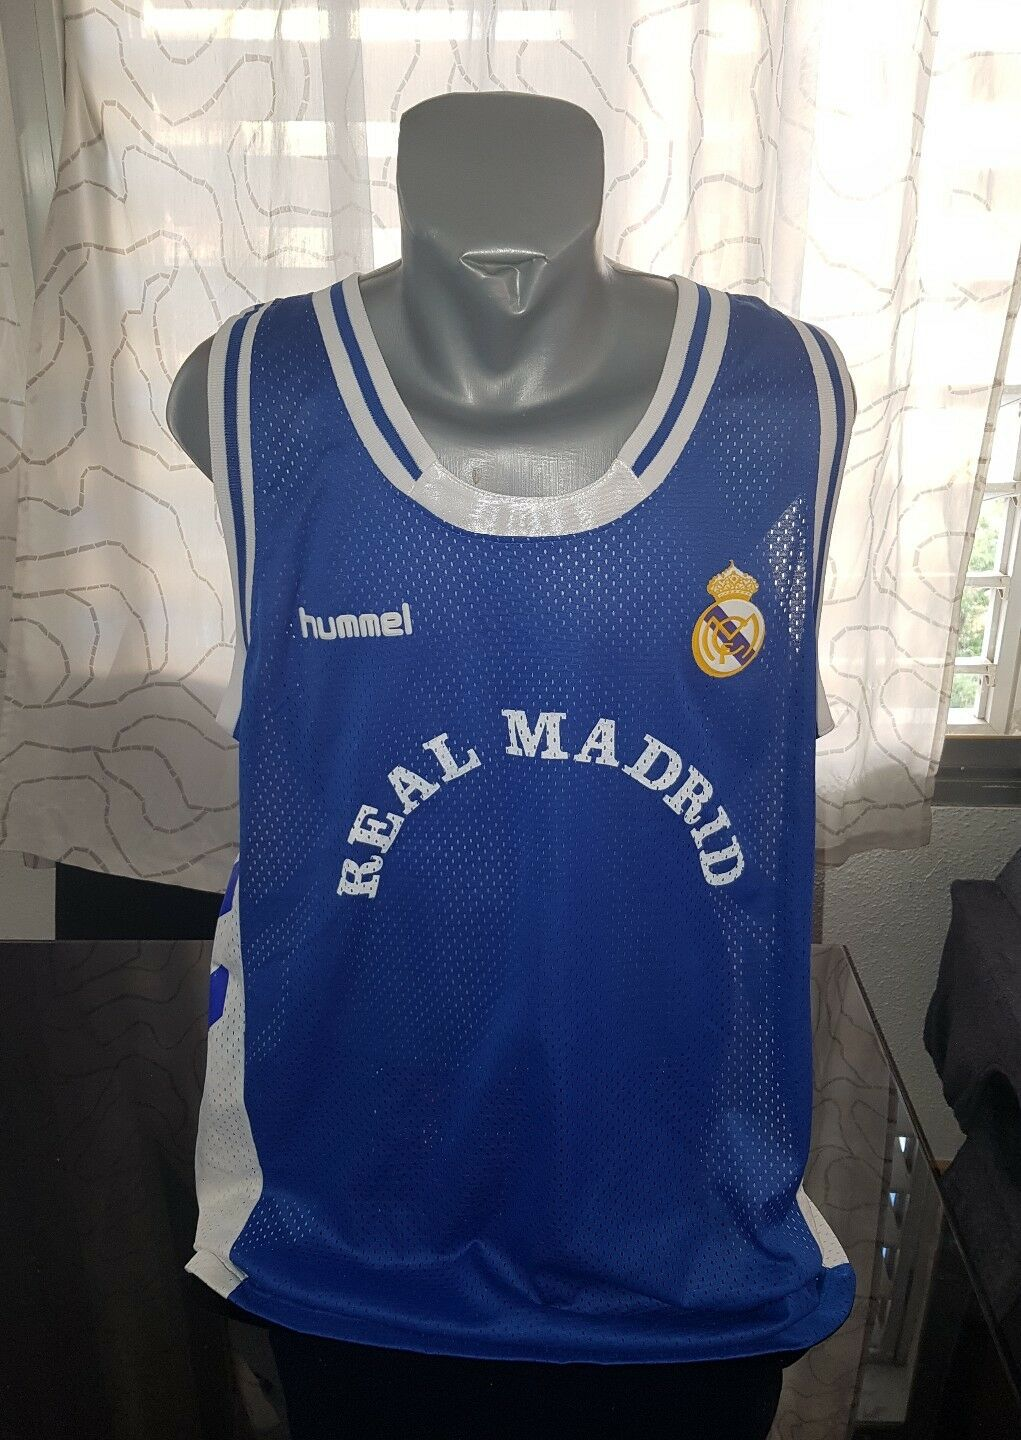 CAMISETA SHIRT VINTAGE 90'S HUMMEL REAL MADRID BASKETBALL ACB TALLA XXL